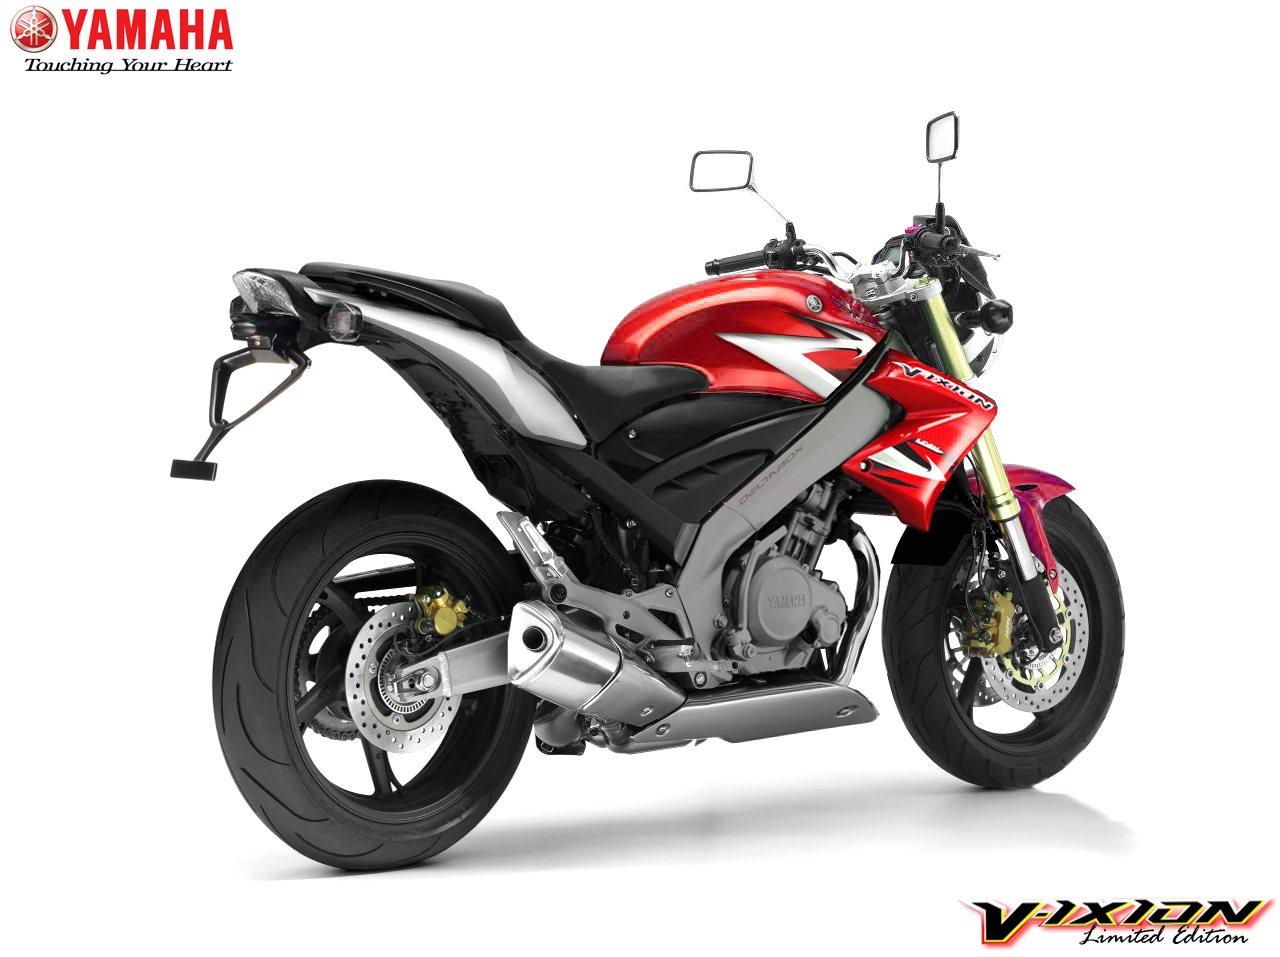 modifying tips yamaha vixion for the biker who has a yamaha v ixion i